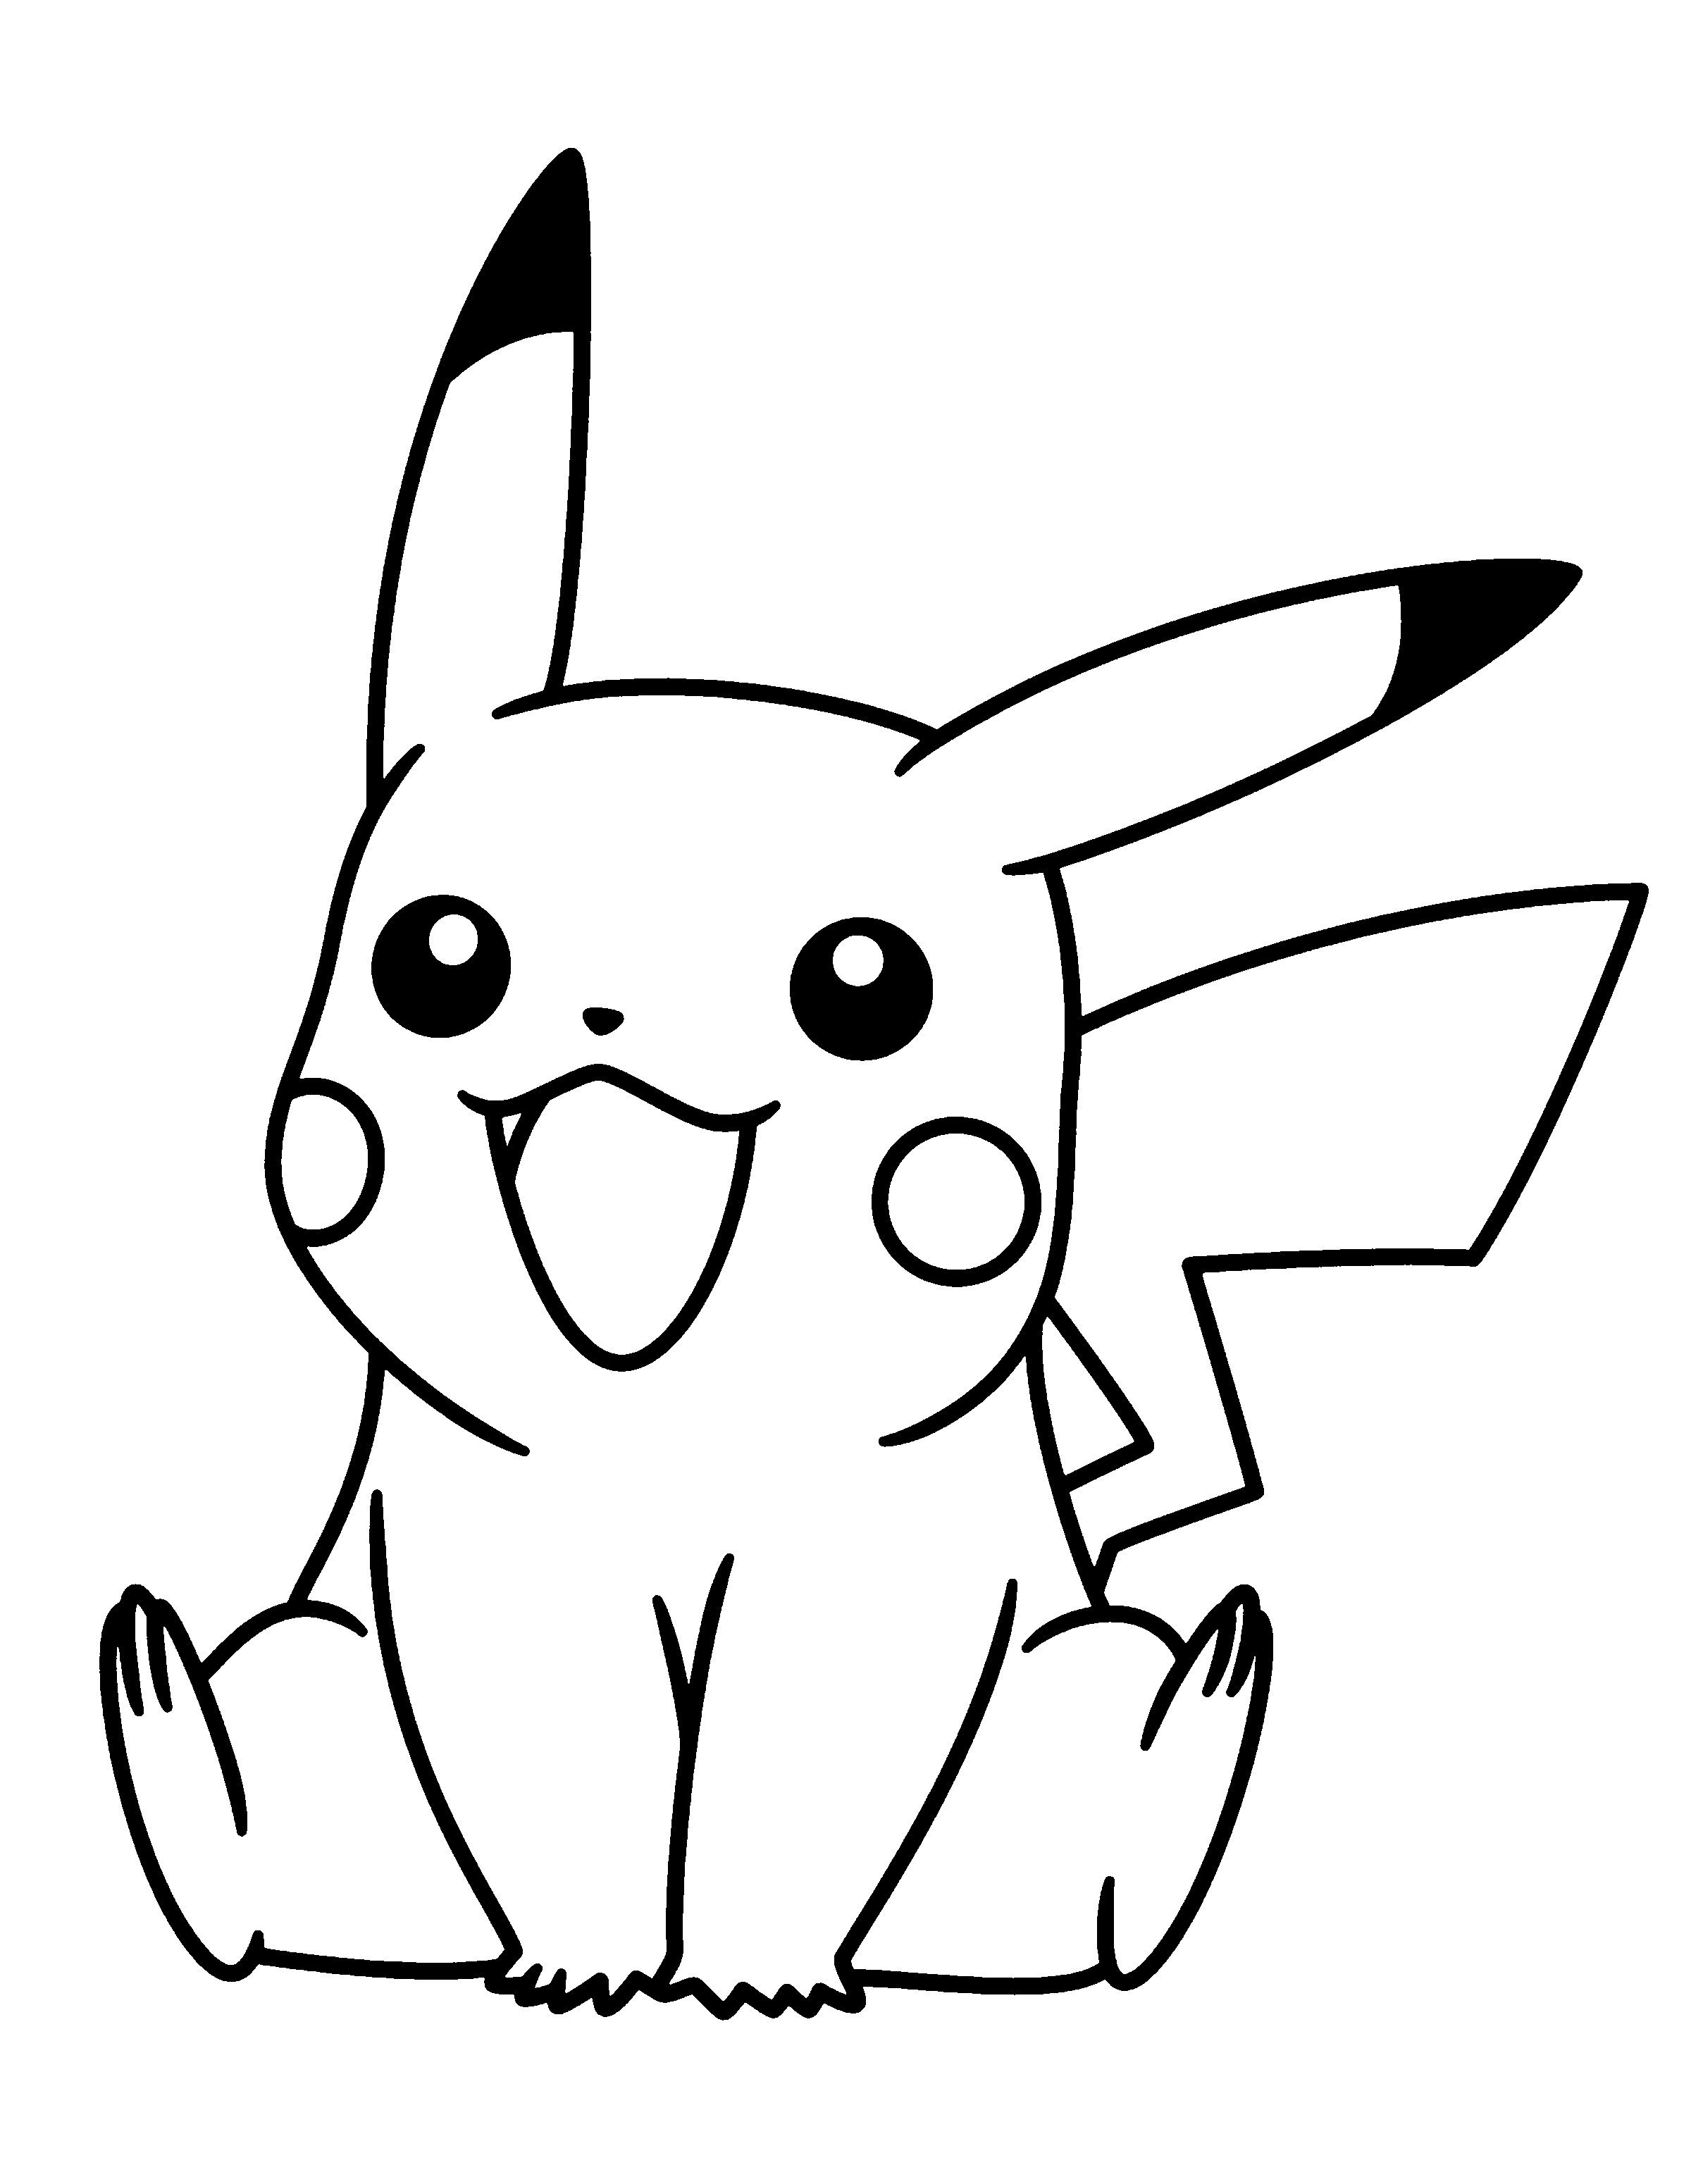 Pikachu Drawing Coloring Pages Pokemon Coloring Pikachu